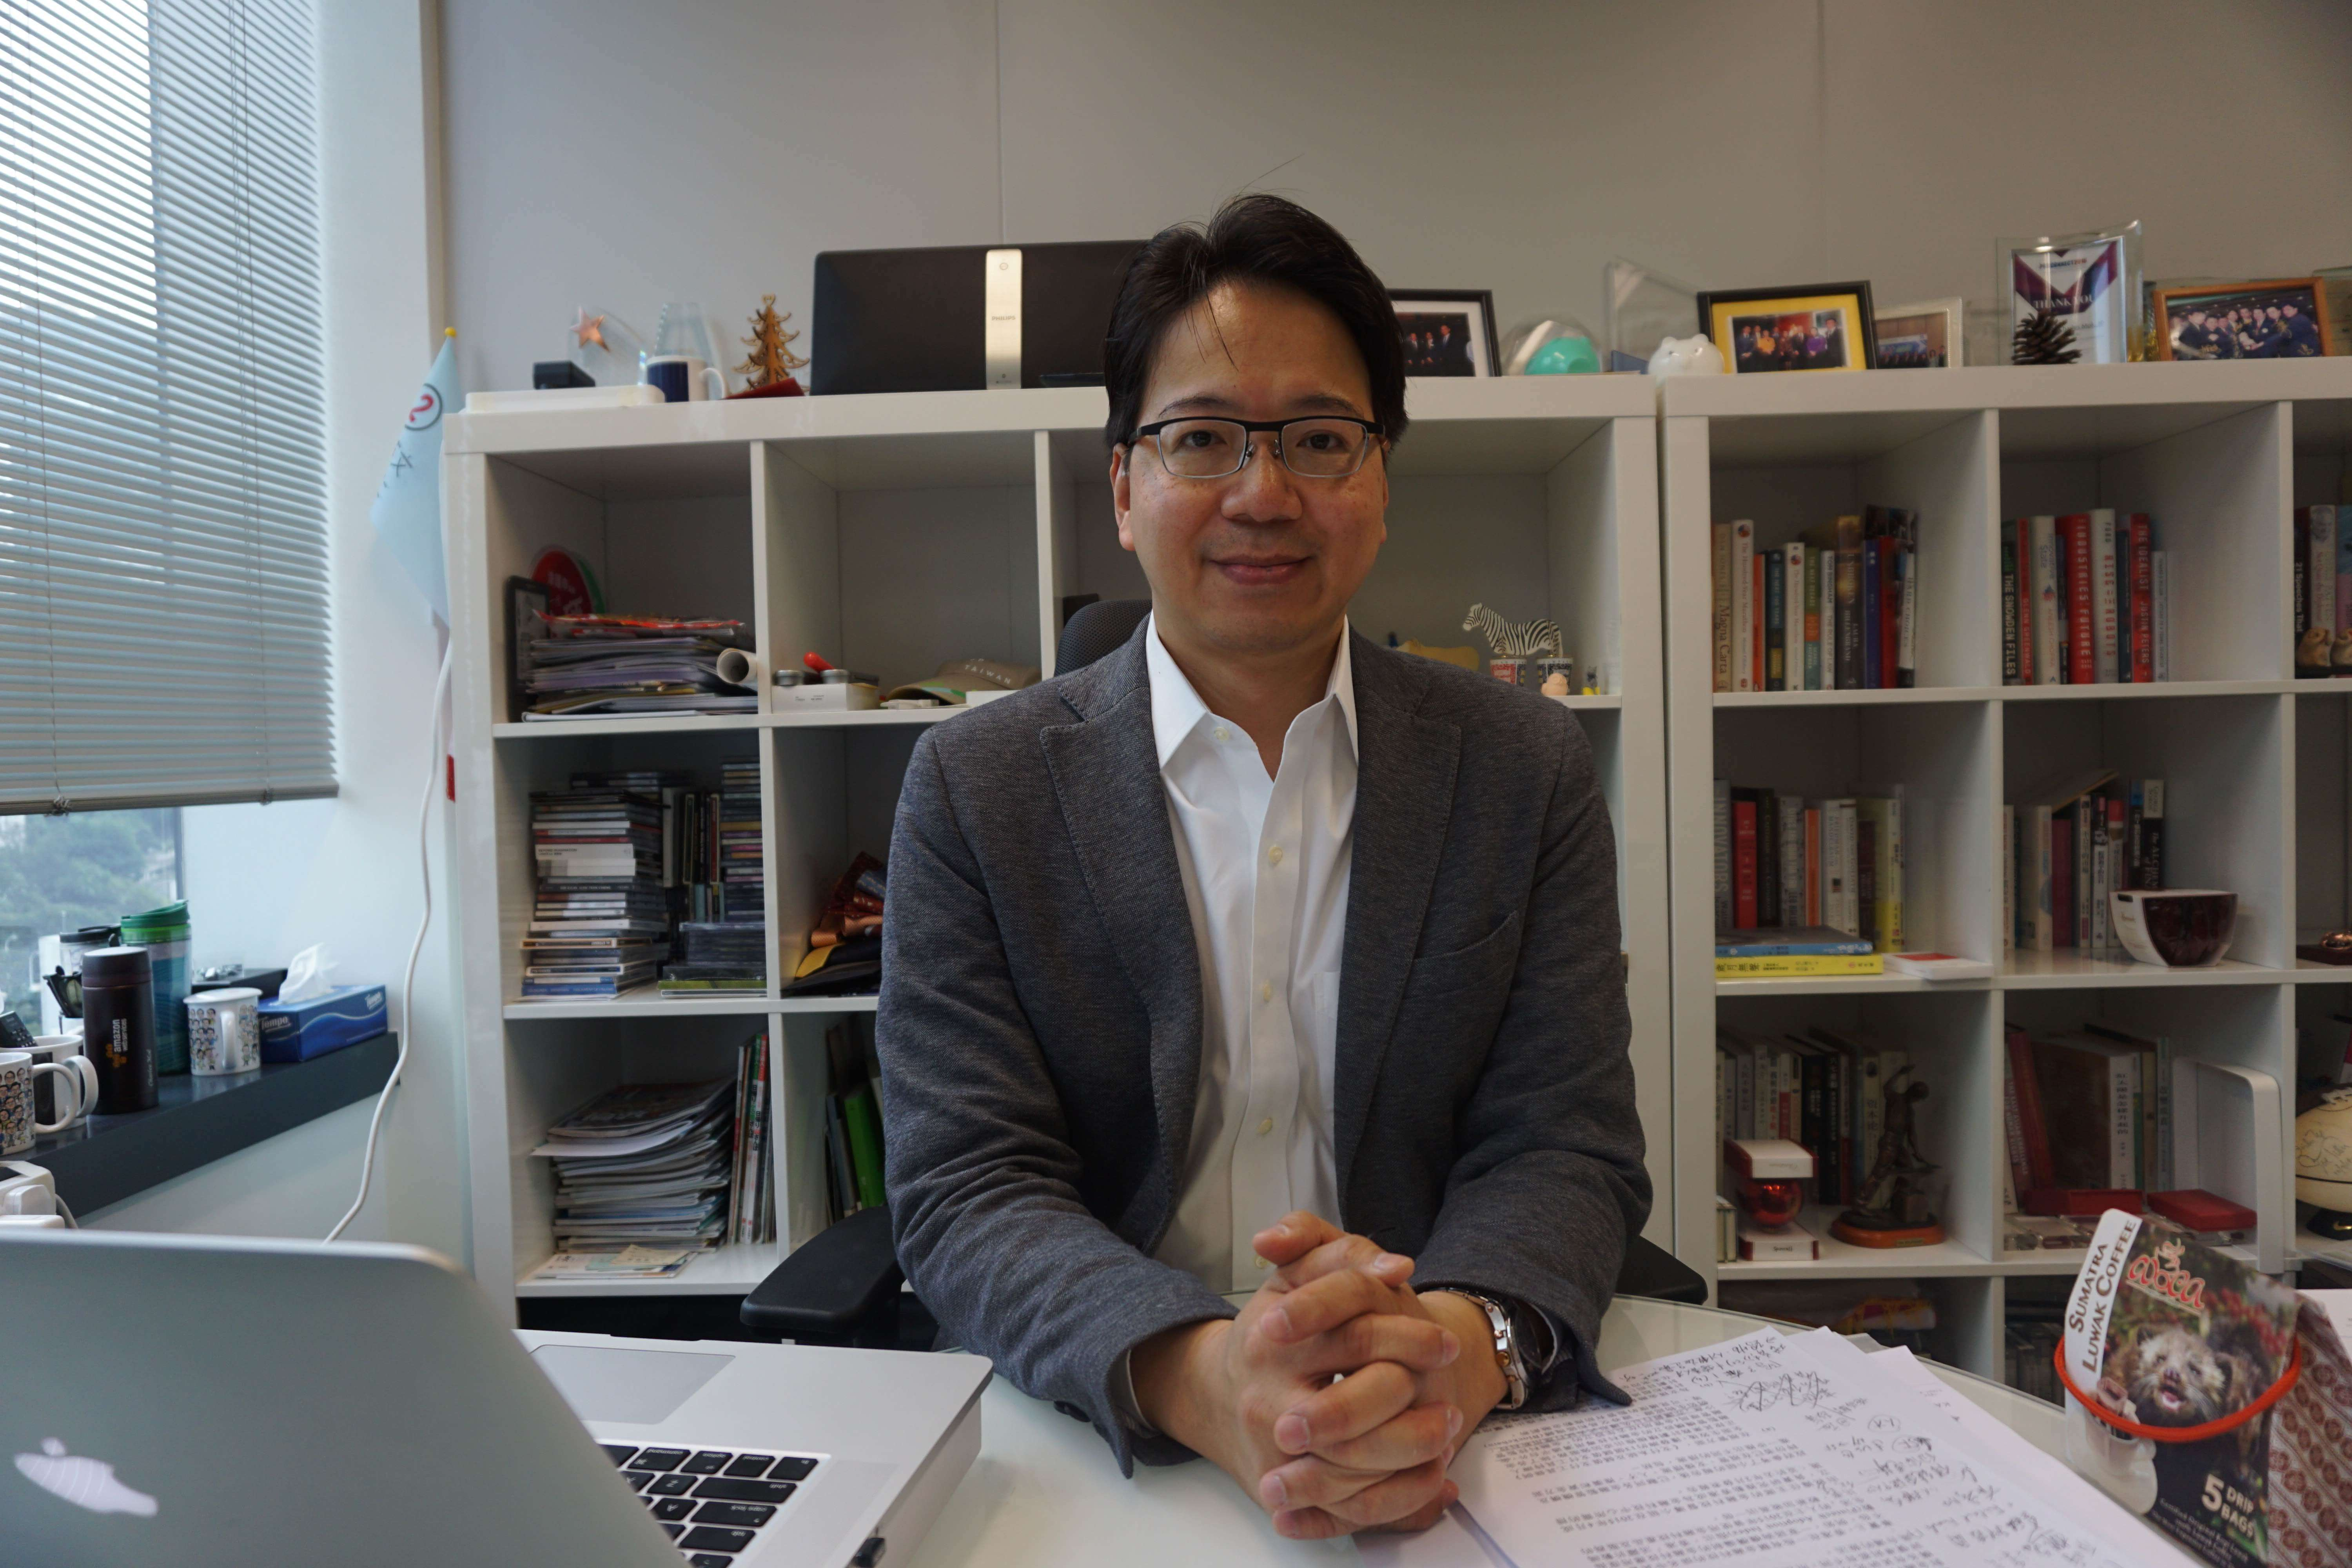 Charles Mok criticized government for not taking the le ership in applying AR technique in practice these years.